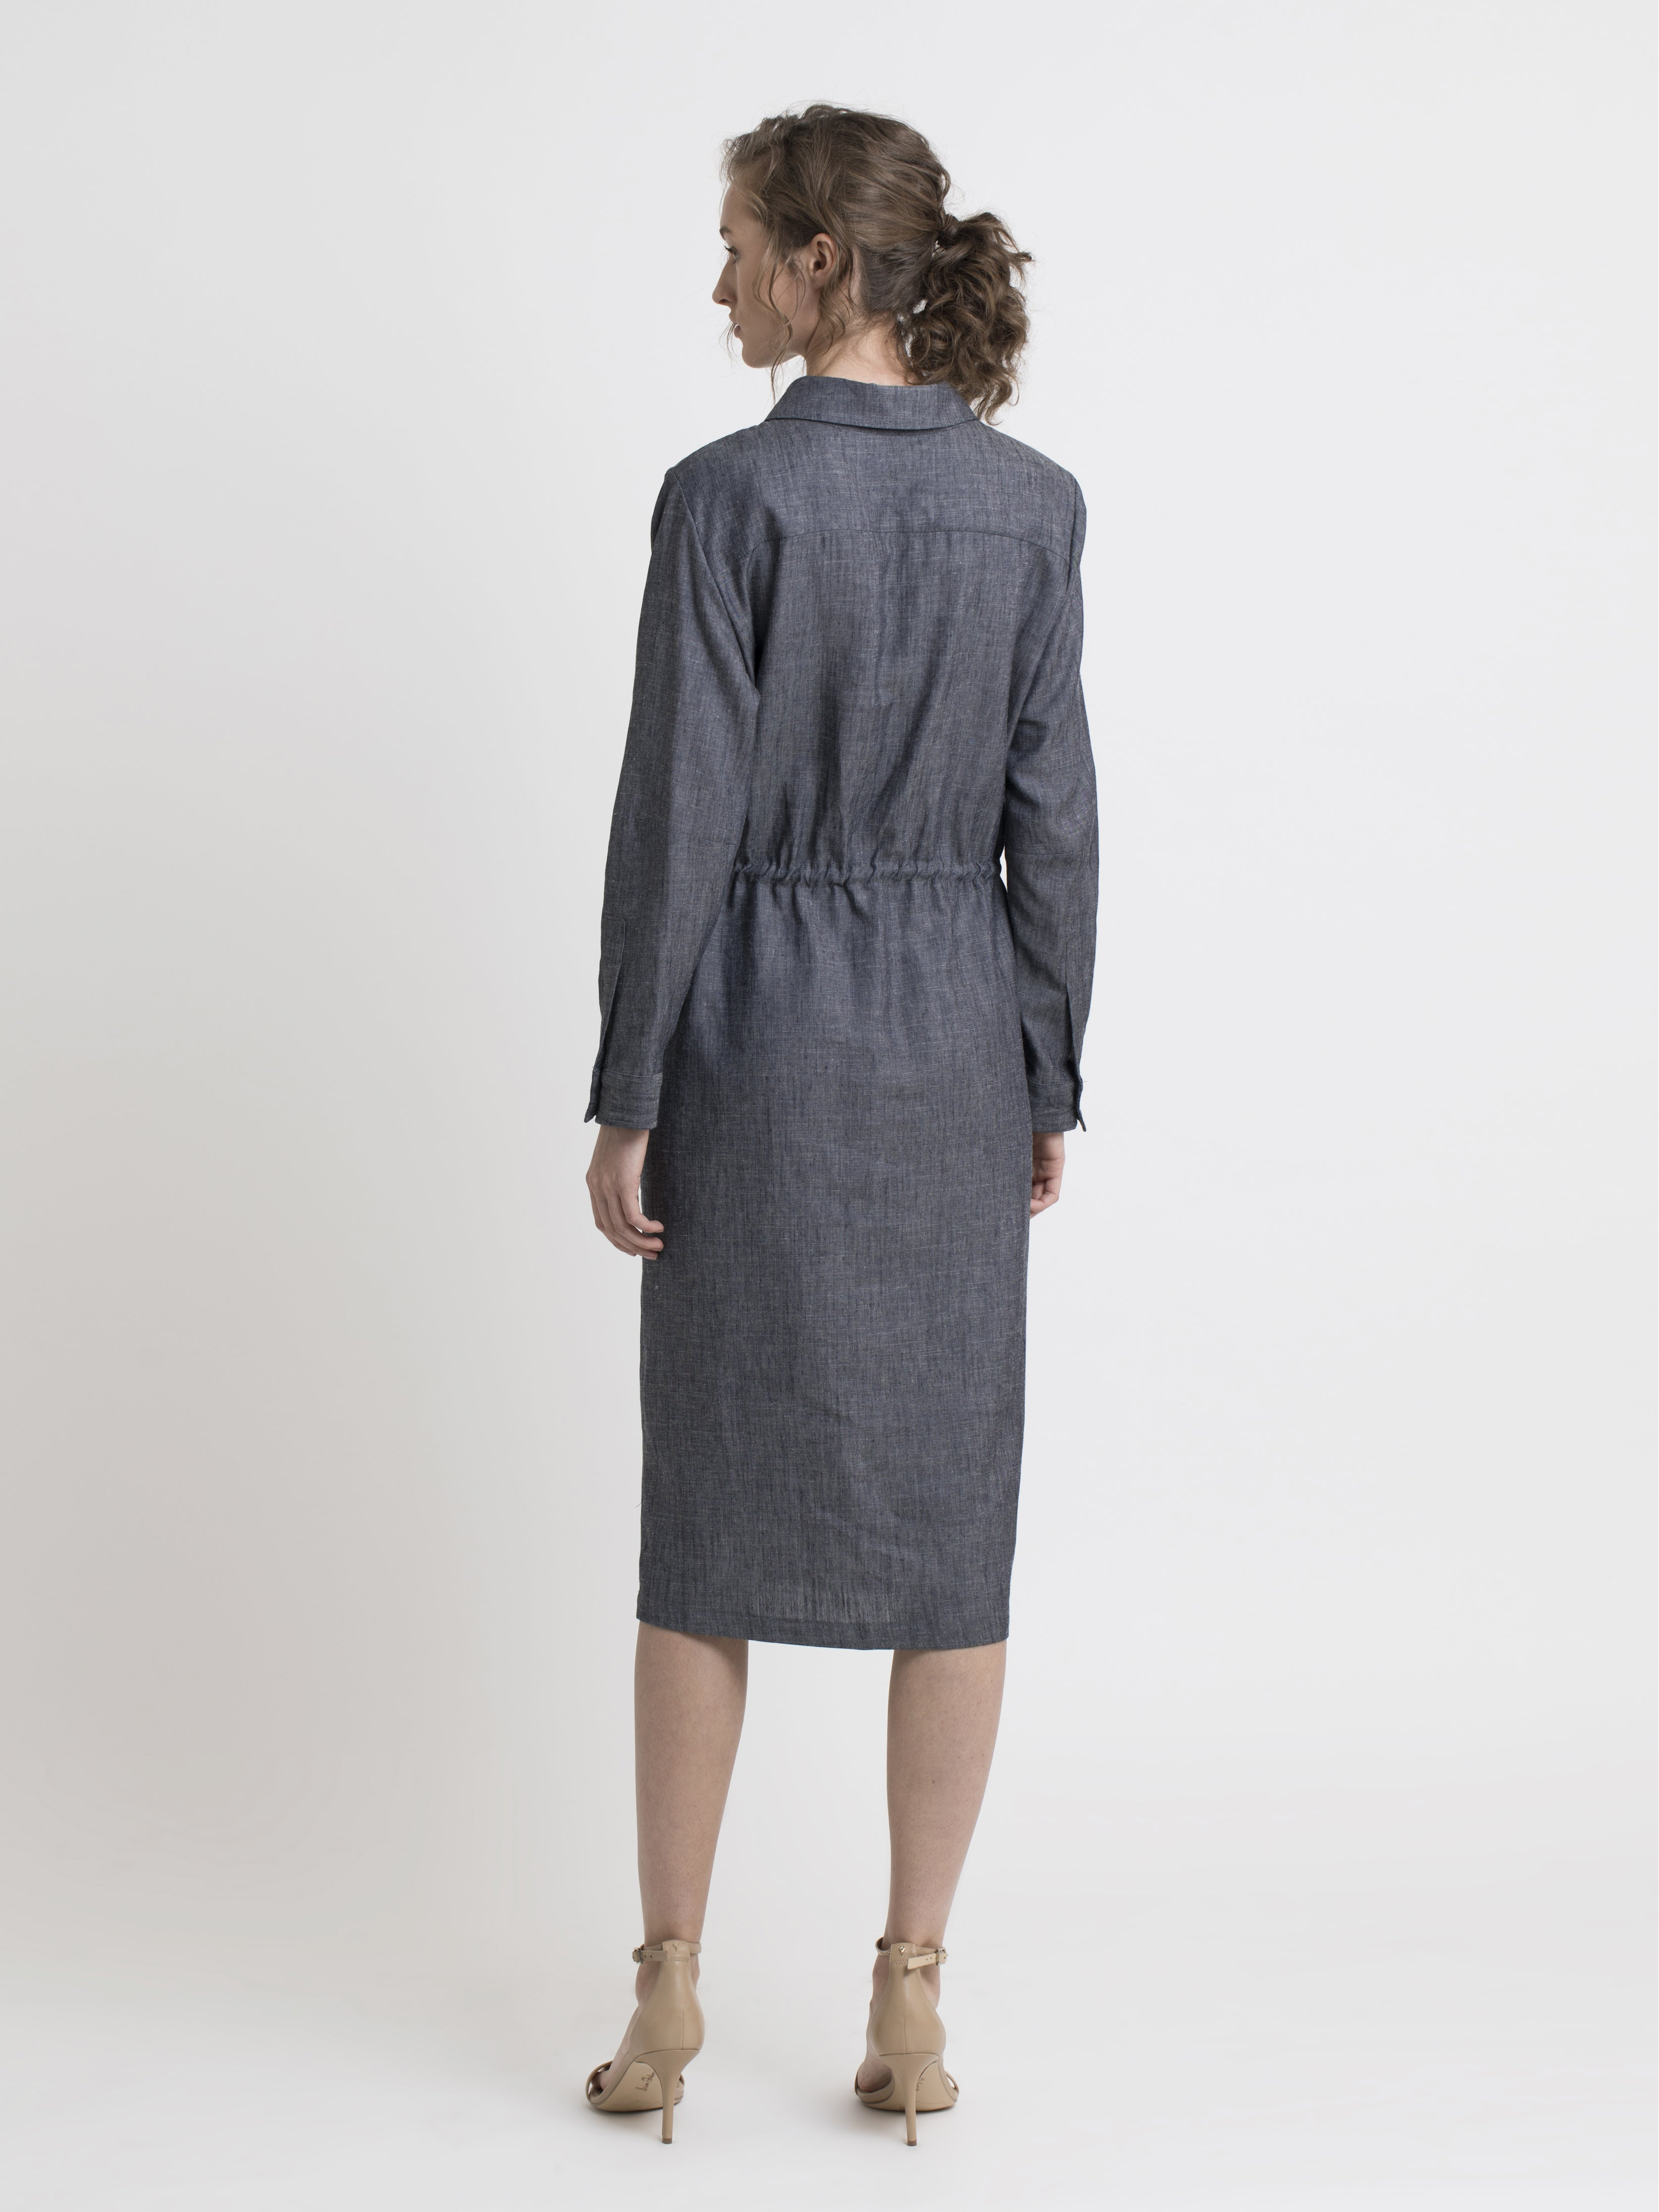 Back view of a female model wearing a knee length long sleeve straight cut denim shirt dress with drawstring inserted belt and high heel nude sandals. From the RÉZO women's collection.